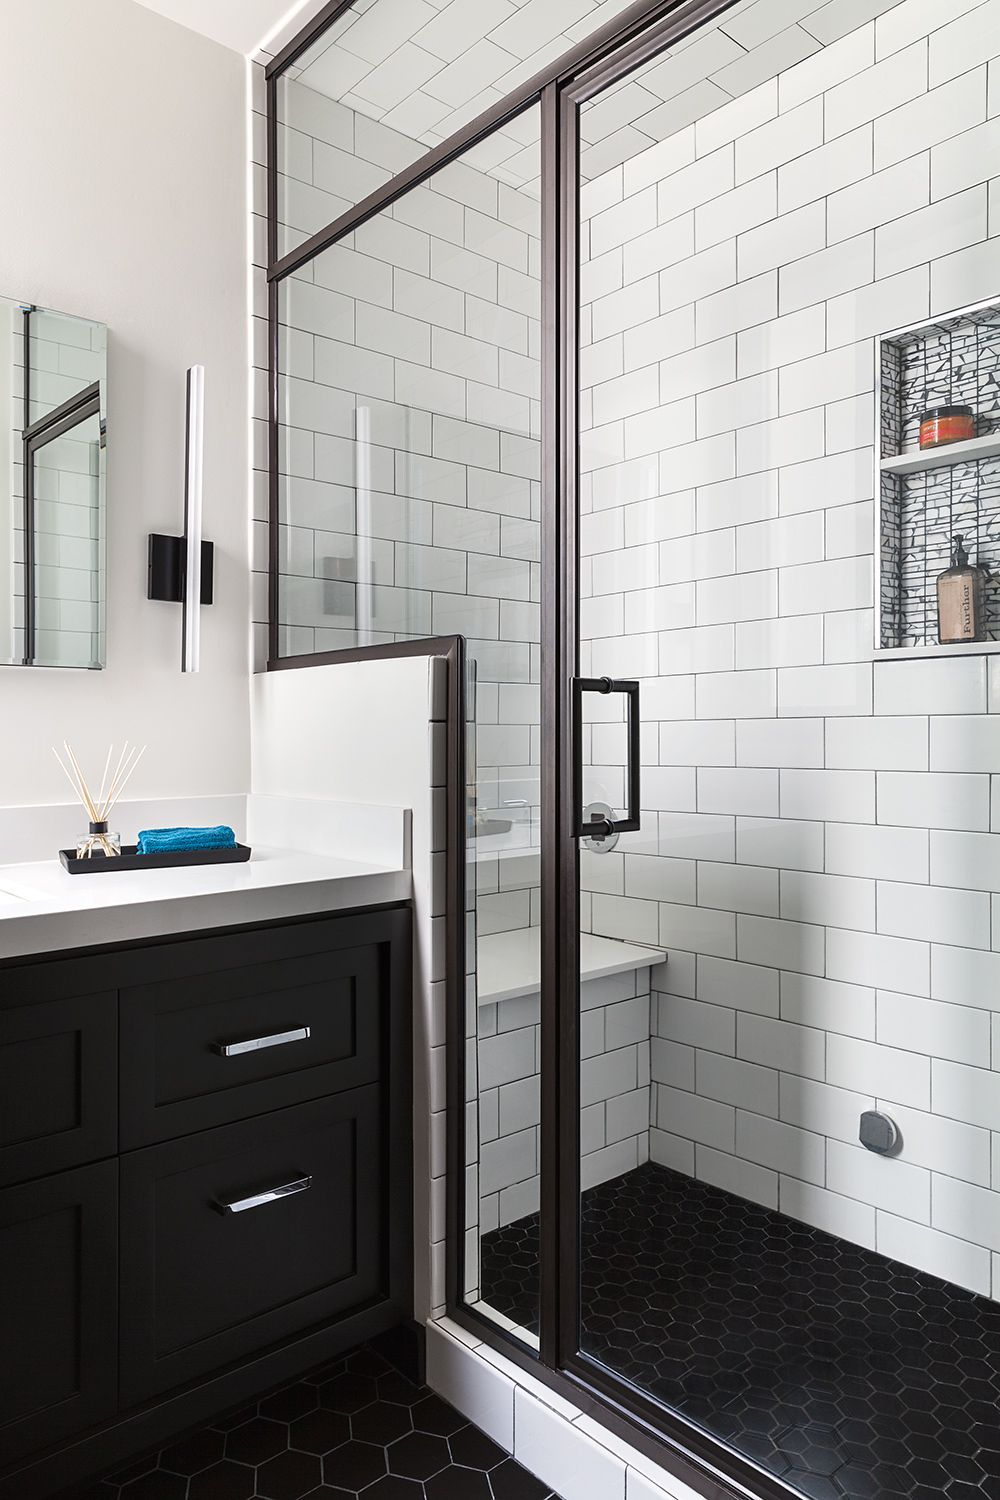 San Francisco Bathroom Remodel Steam Shower Black Hex Floor Tiles White Subway Tiles Ann